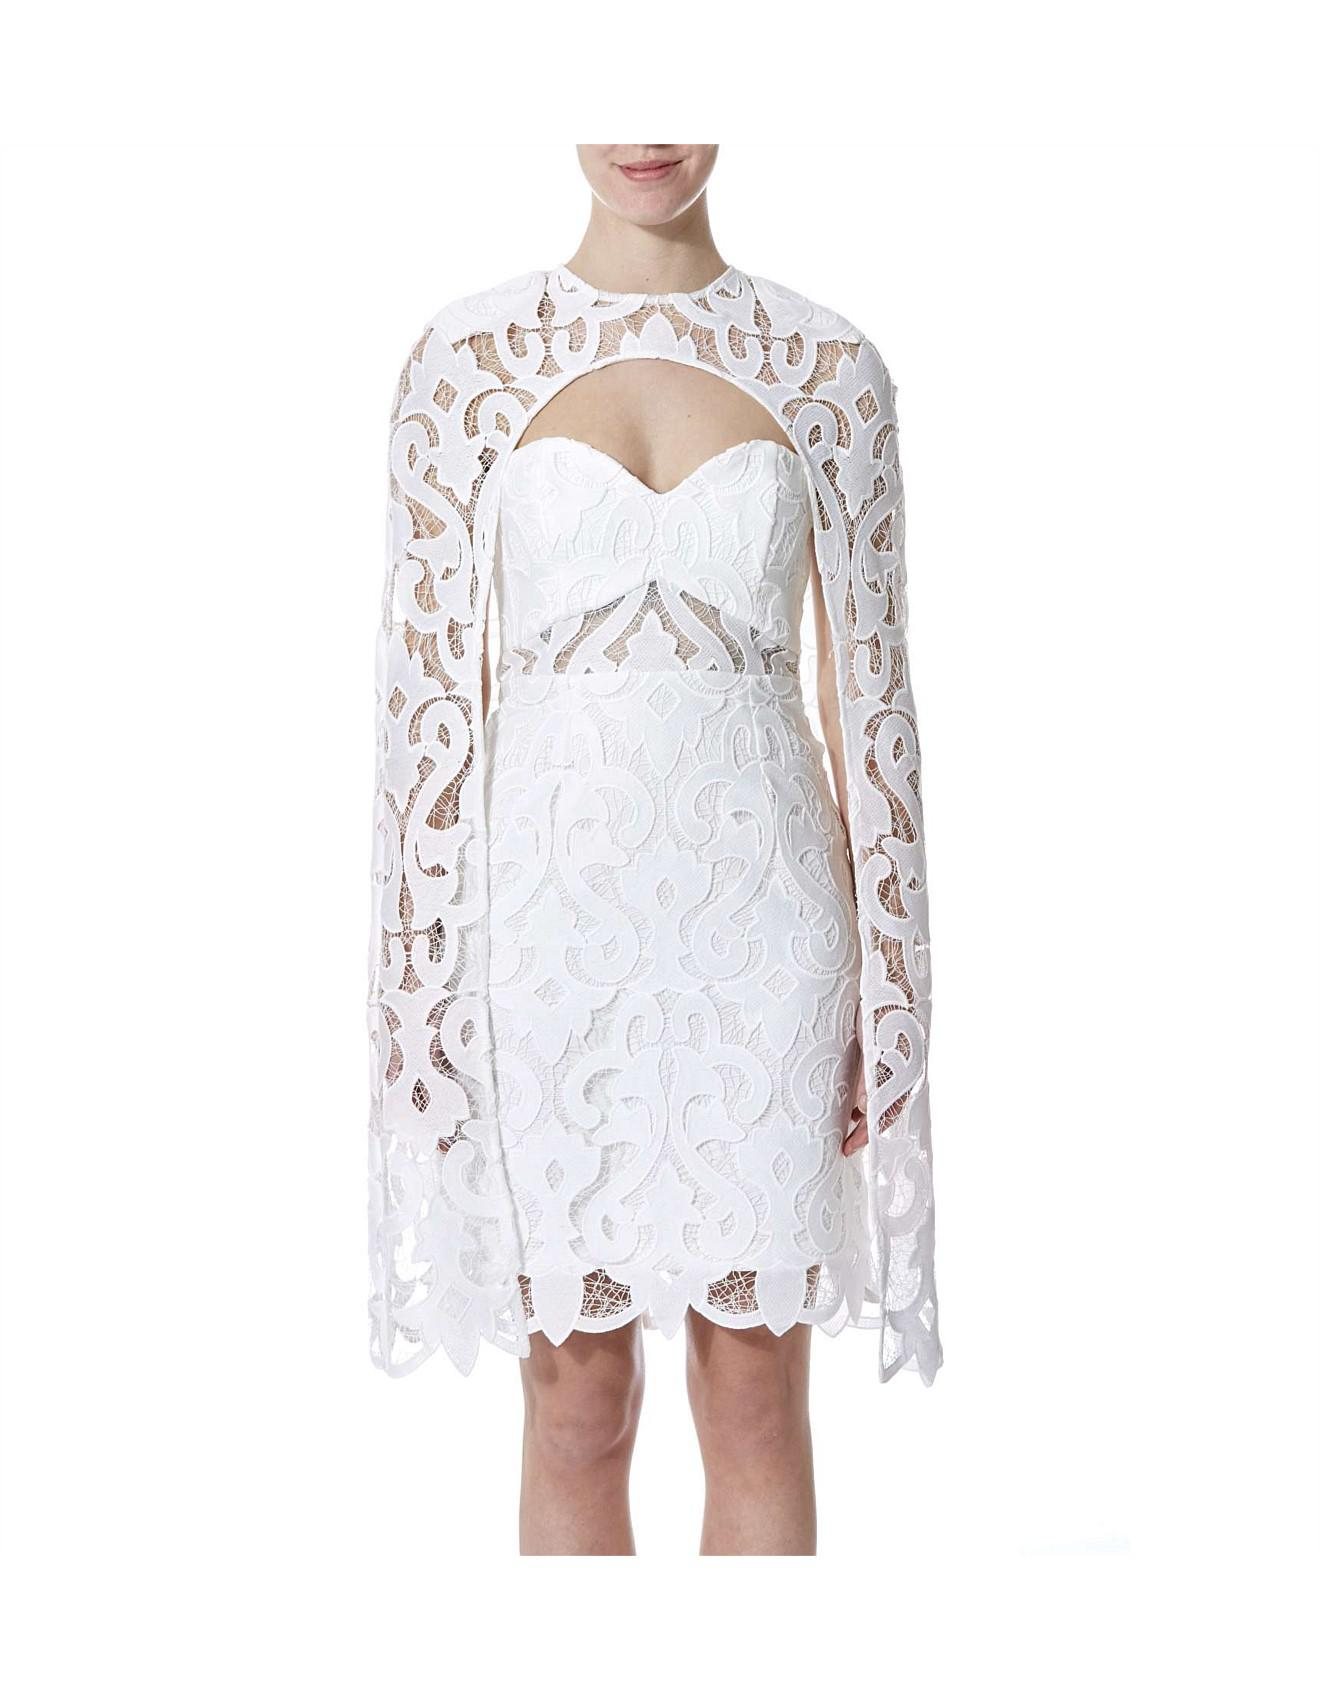 48370ccad50 Thurley Khalessi Cape Dress in White - Lyst